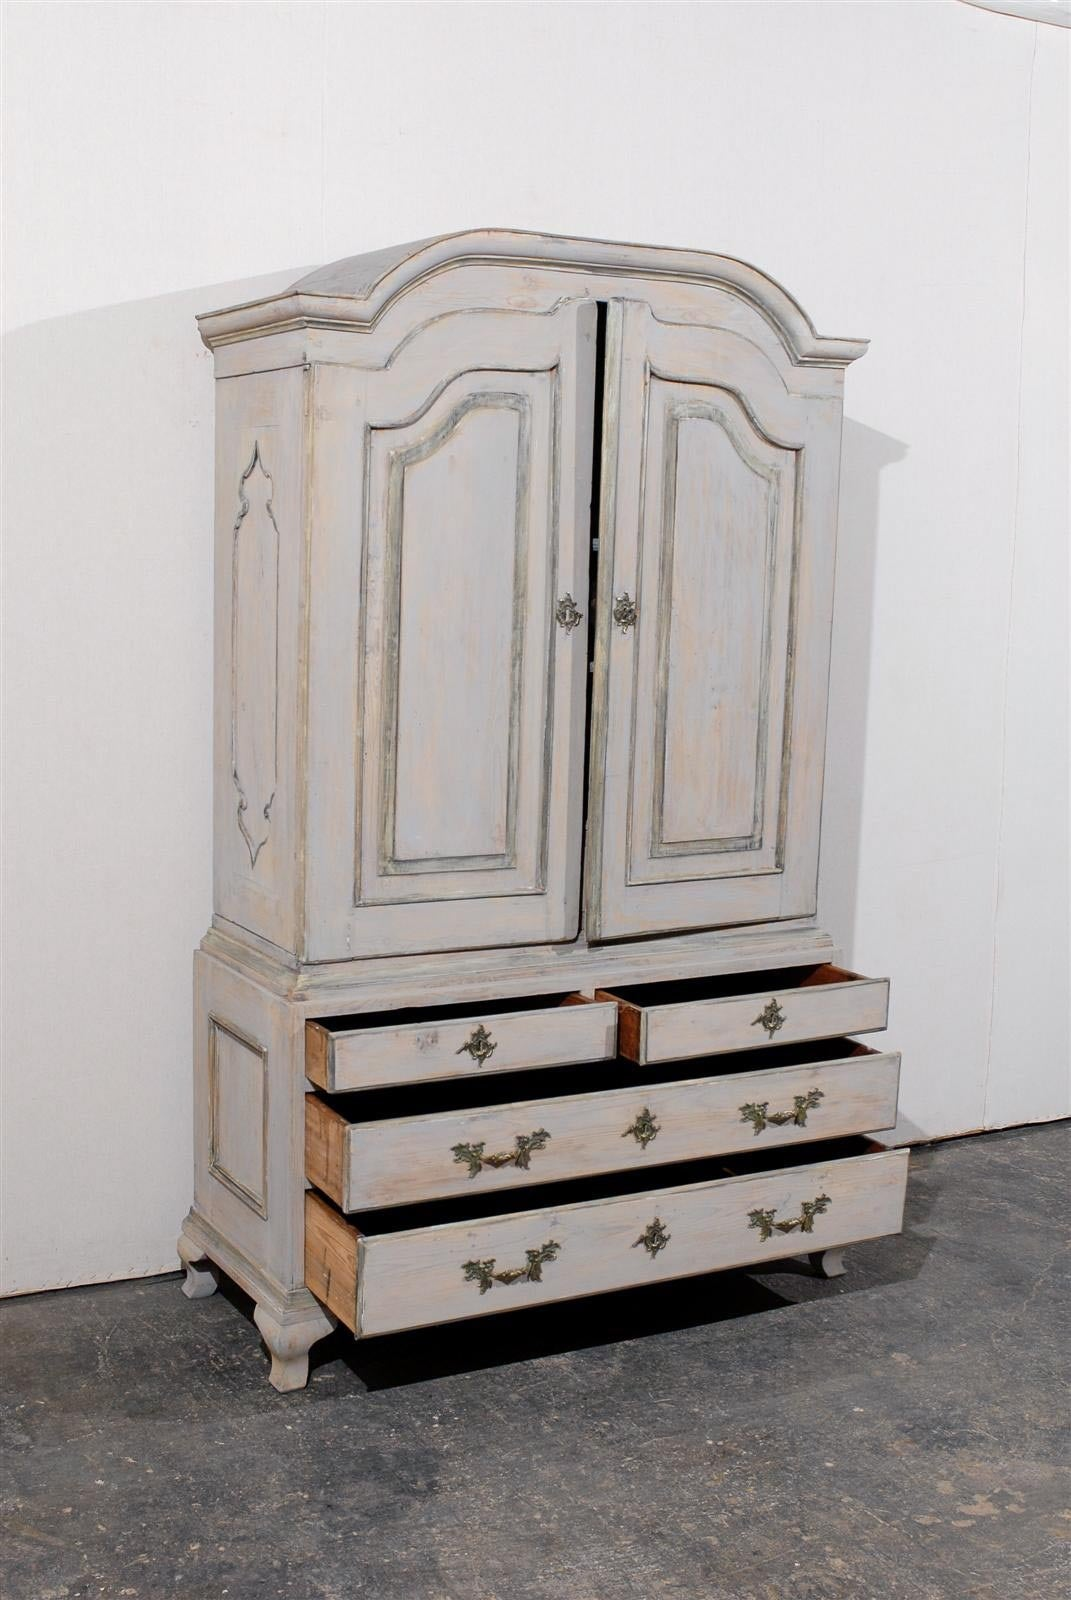 Late 18th Century Swedish Period Rococo Painted Wood Cabinet 4